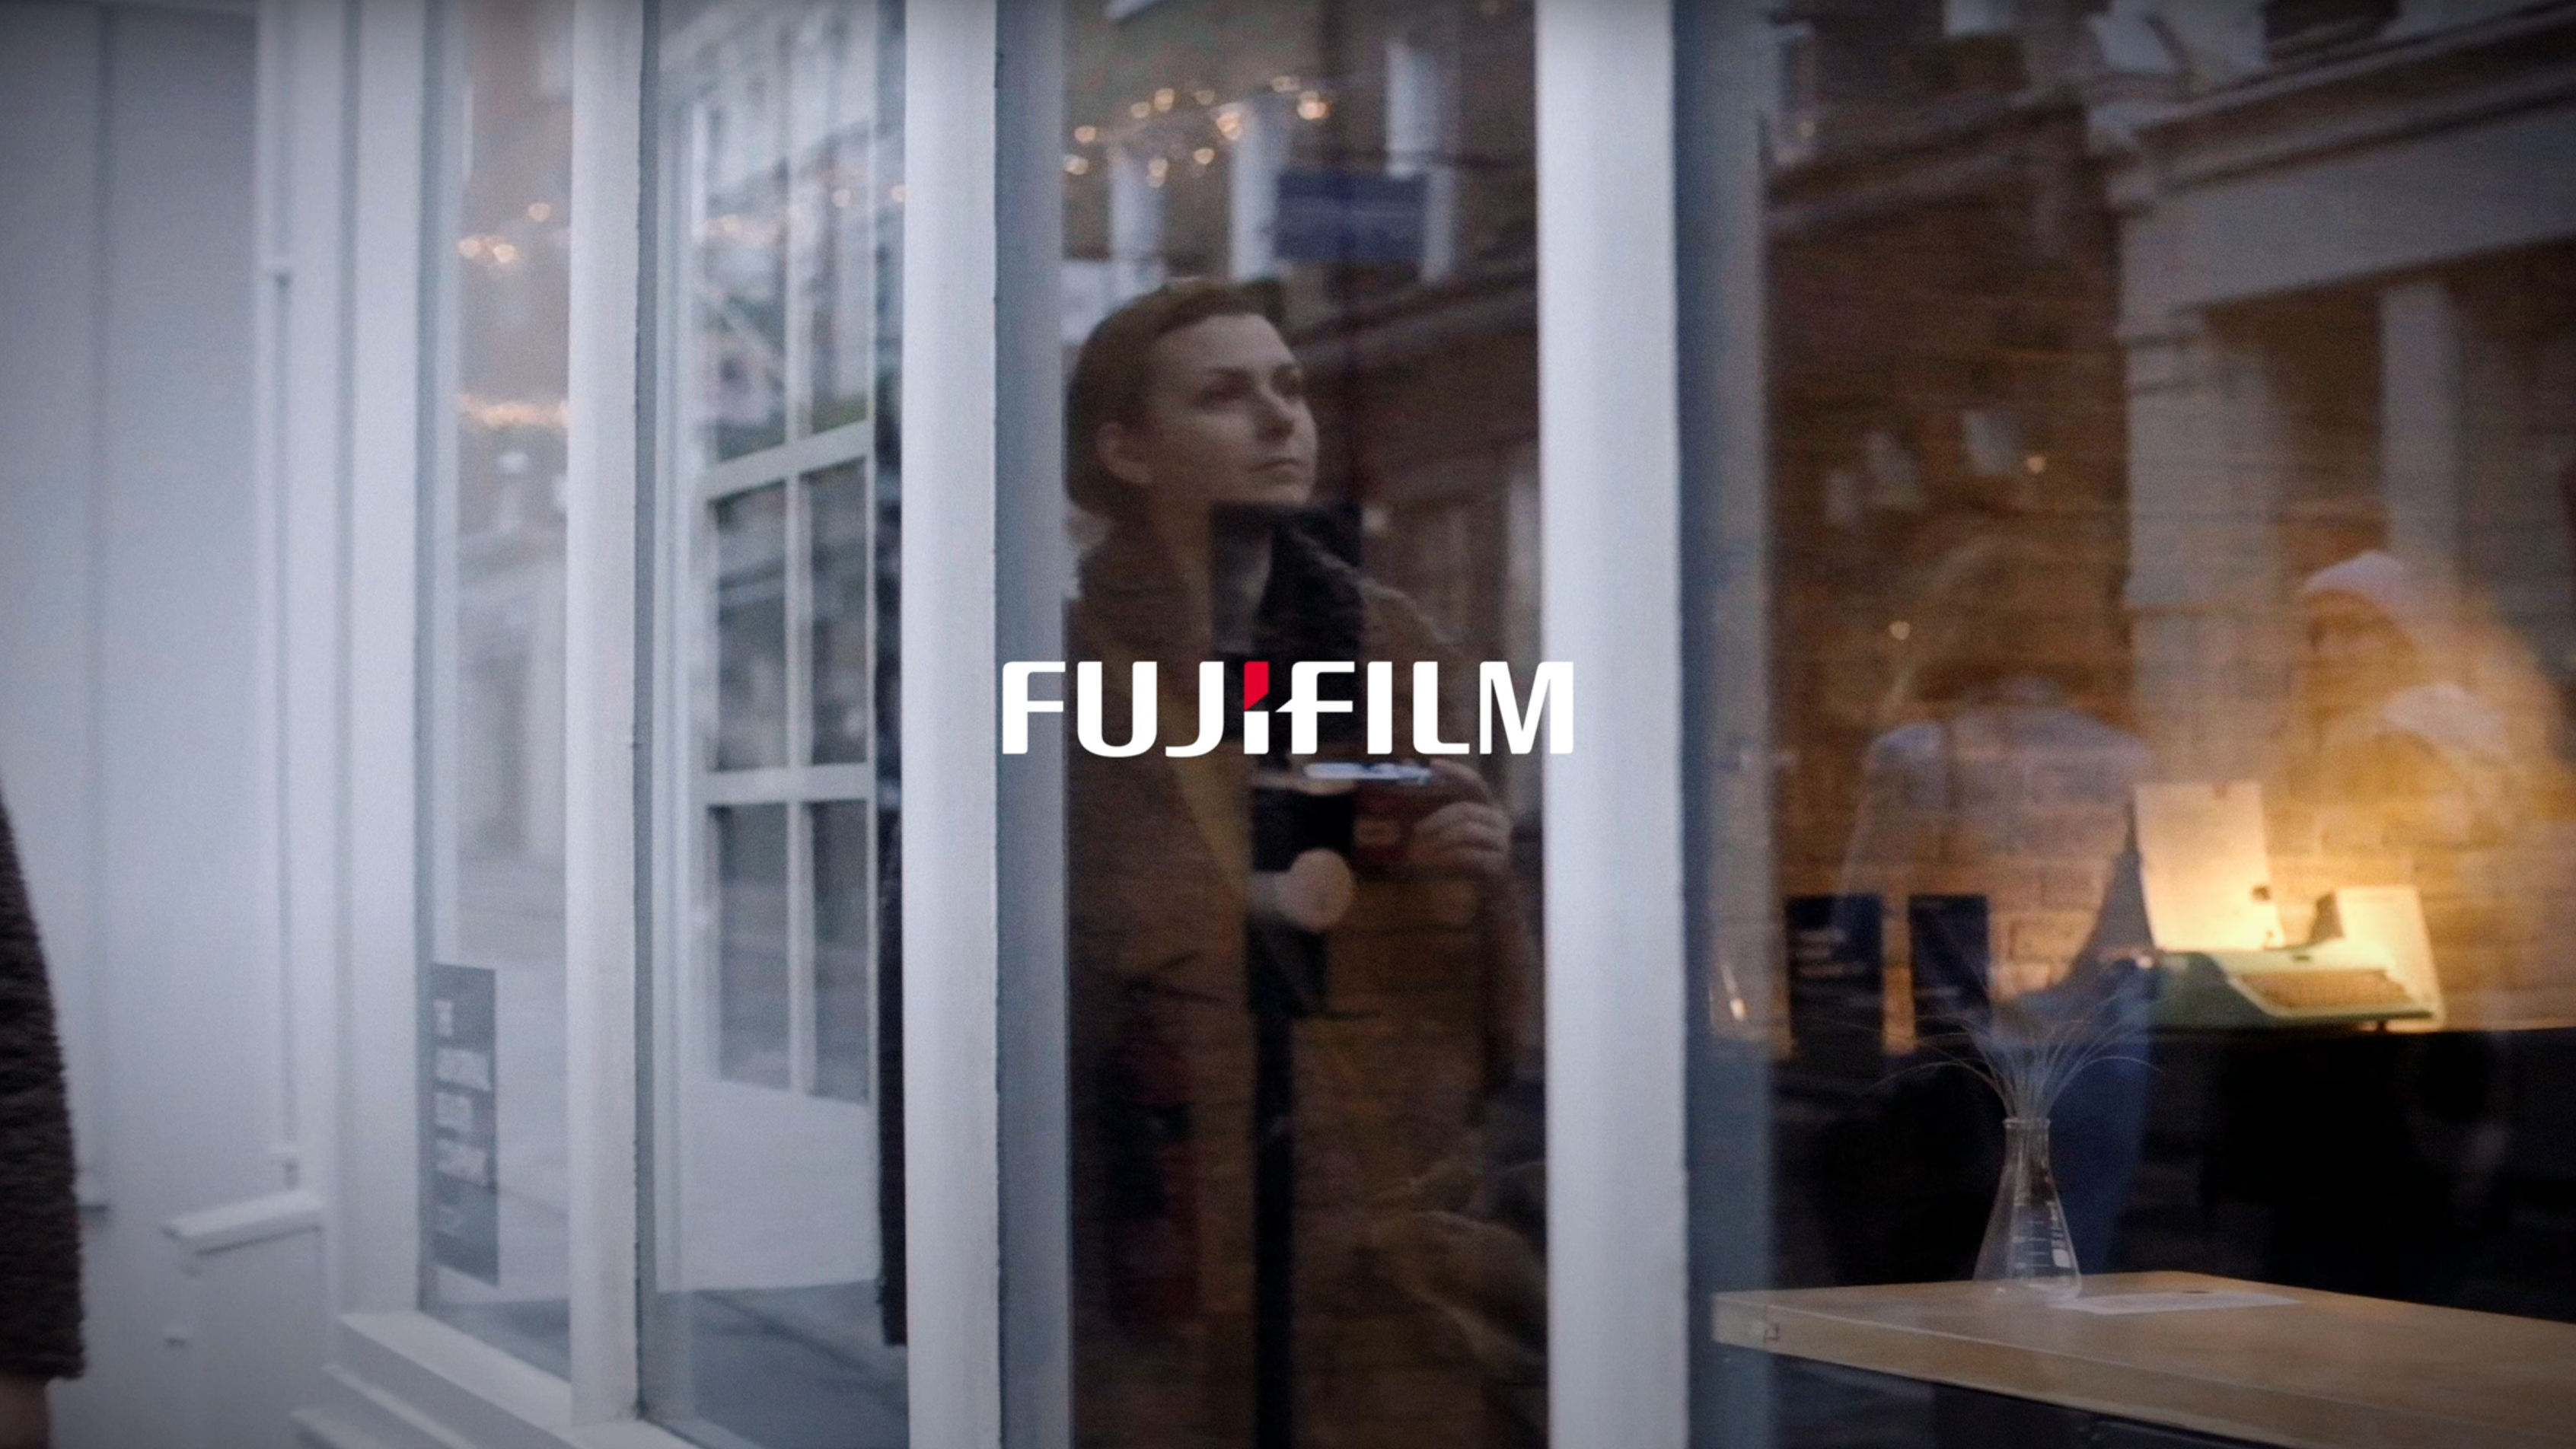 Fujifilm X Photographer, York Place Studios' Dominique Shaw photographs the streets of London in Fujifilm's latest commercial